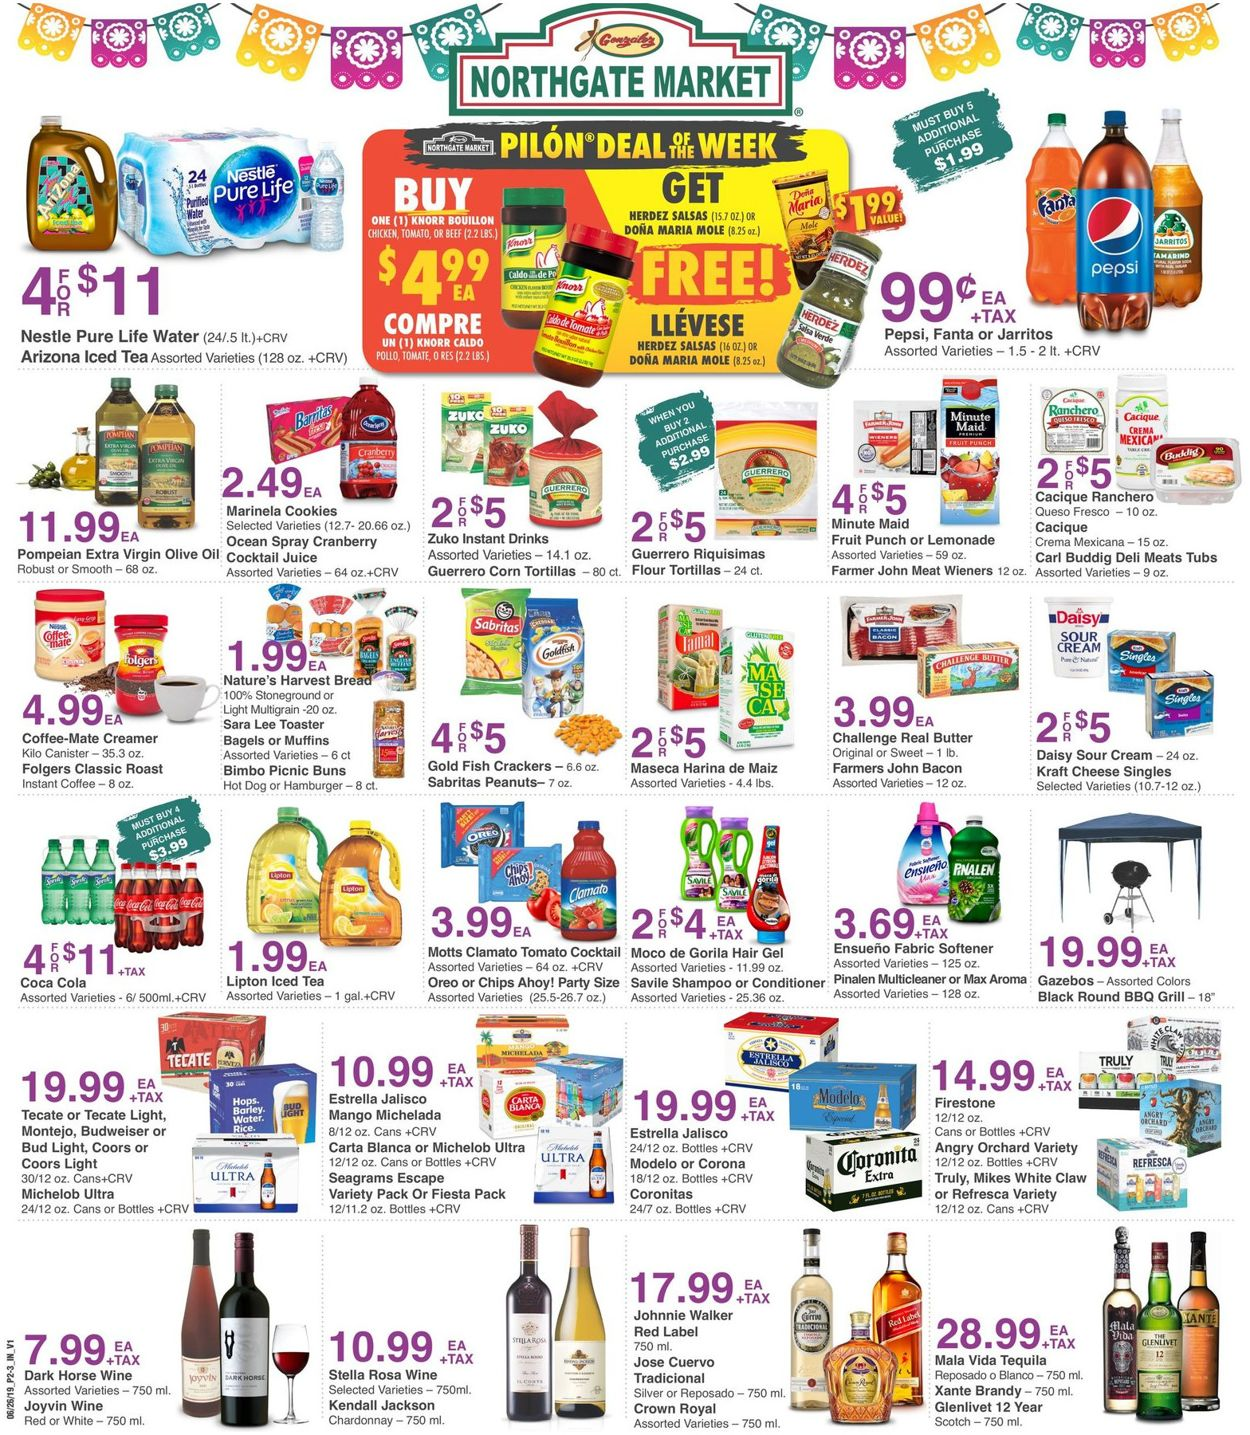 Northgate Market Current Weekly Ad 06/26